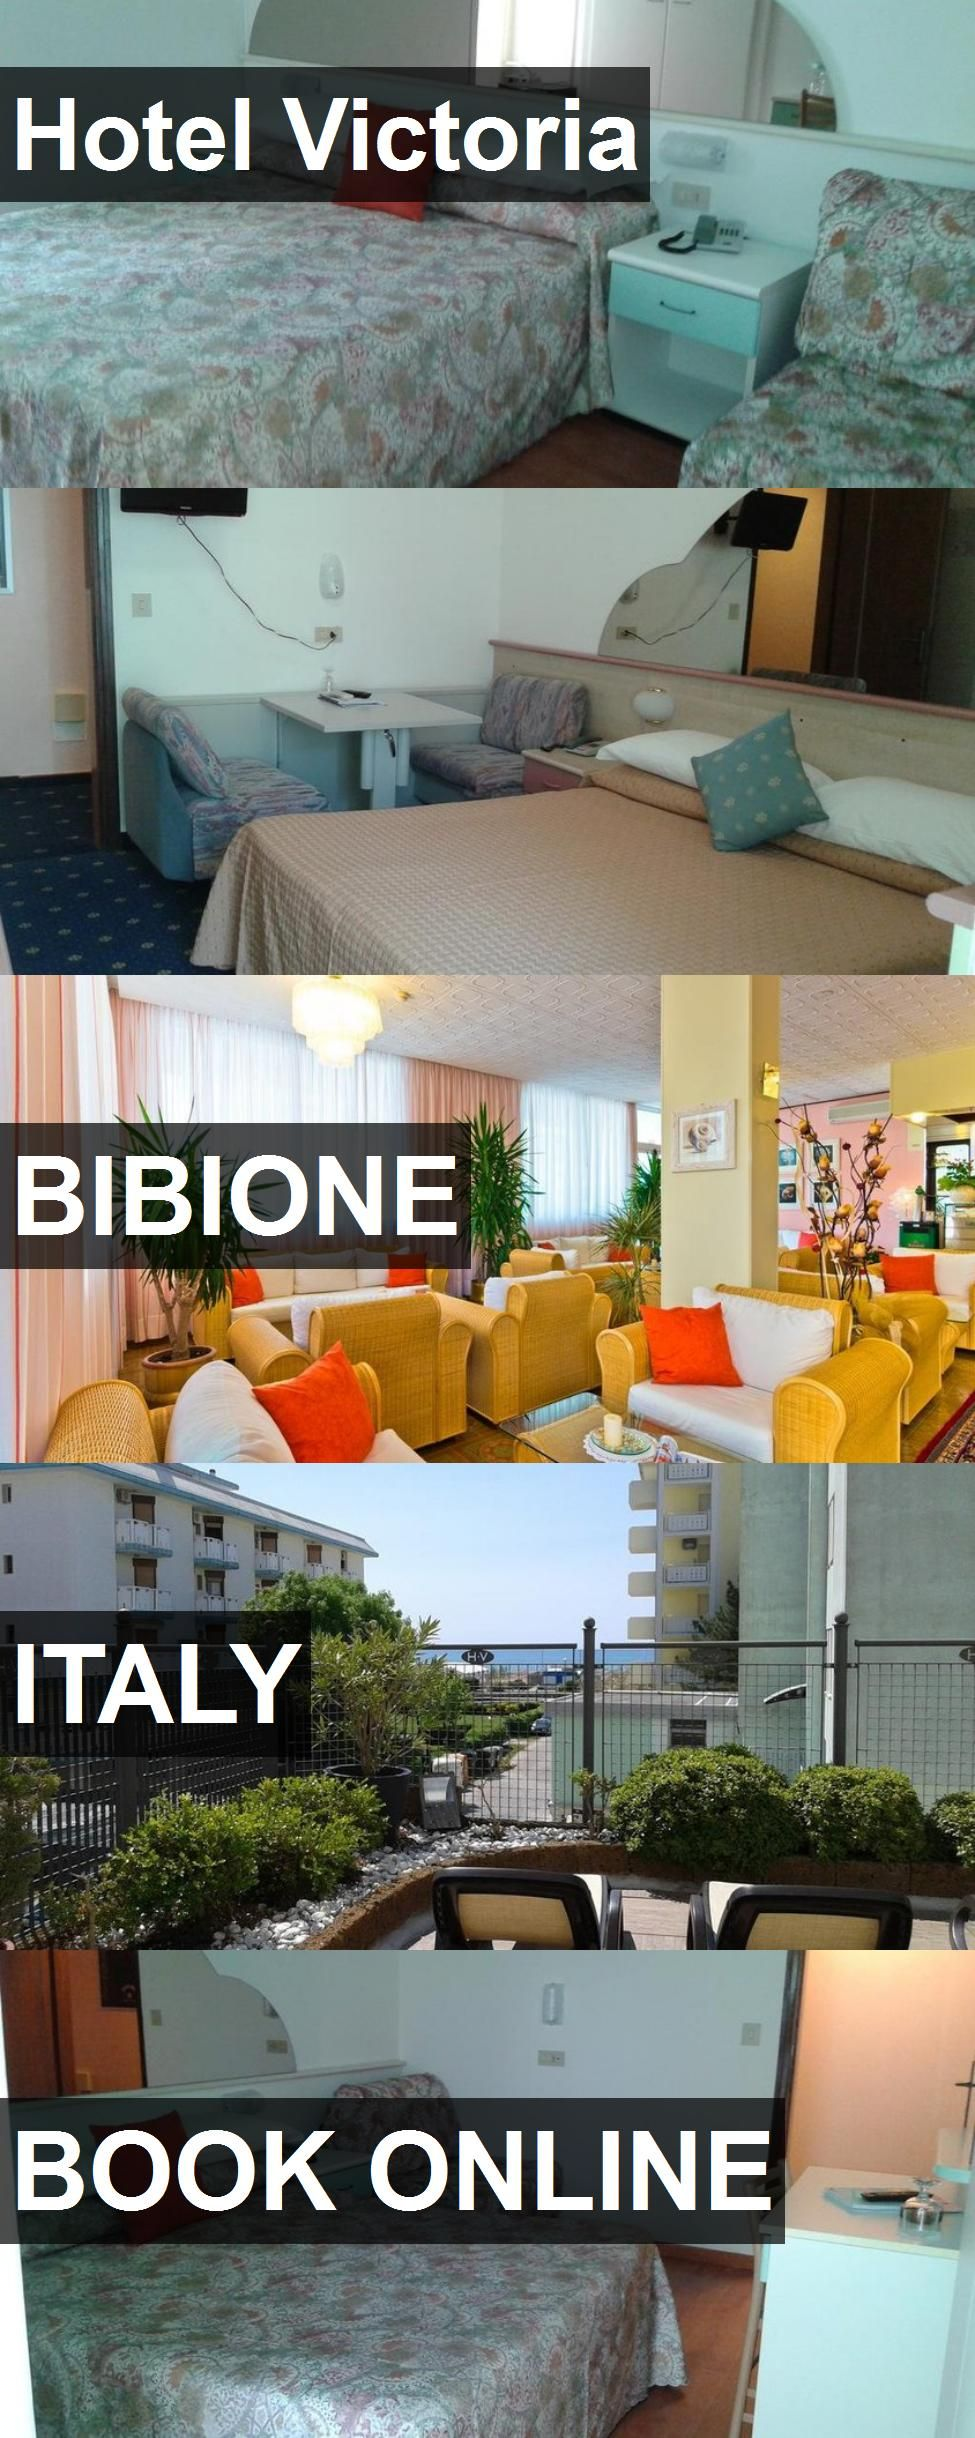 Hotel Victoria in Bibione, Italy. For more information